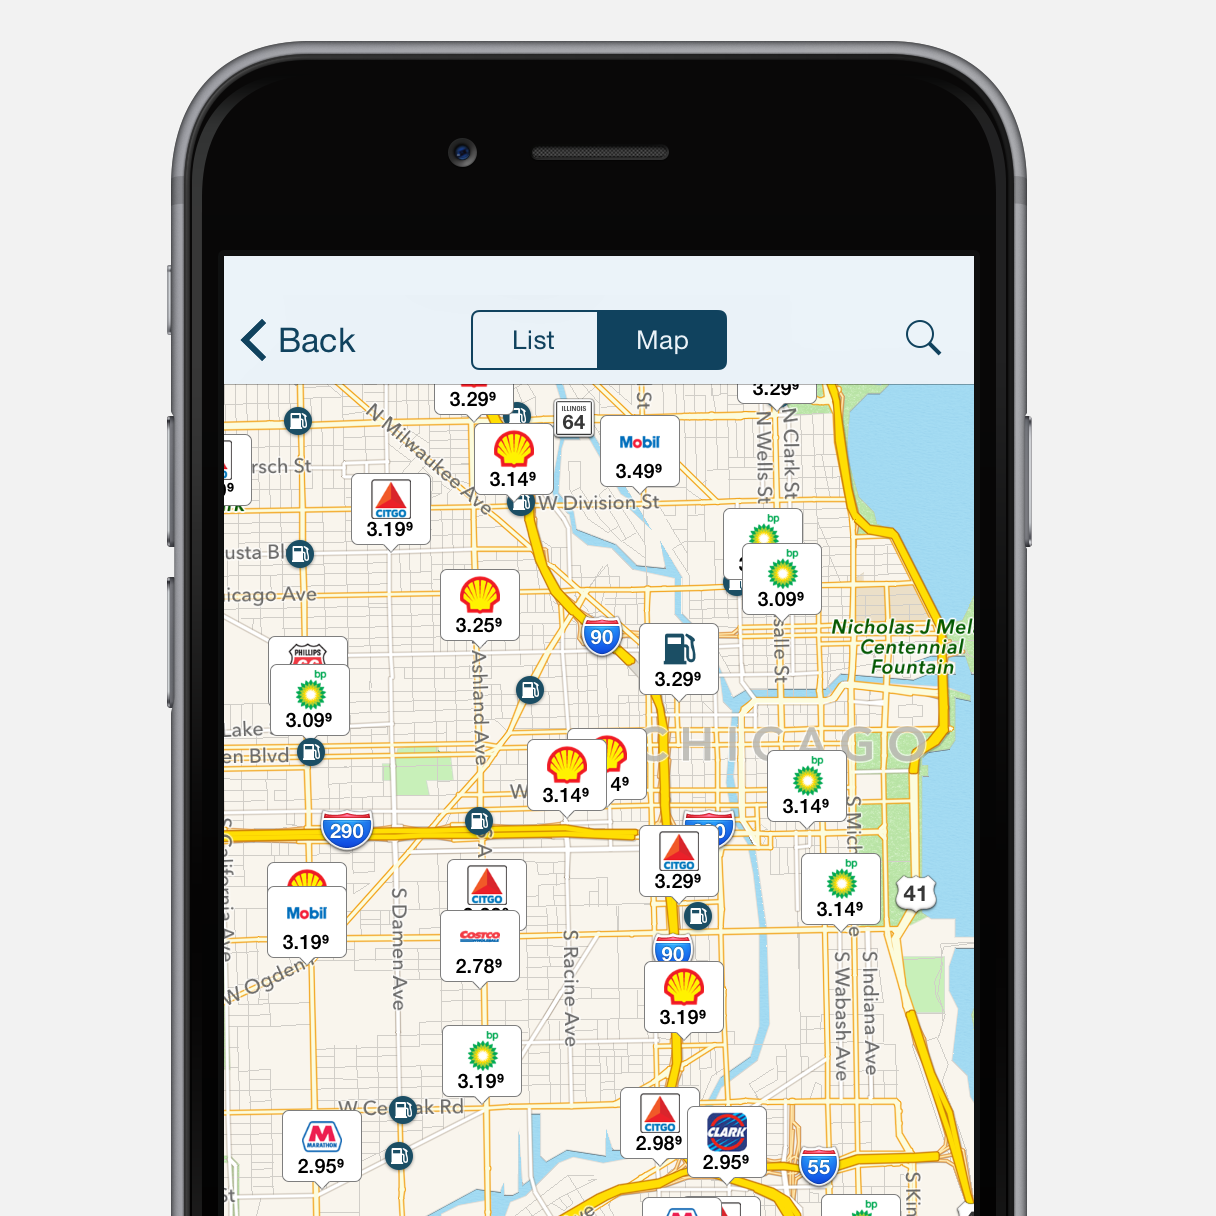 """<p>Road trips can save you some serious coin, but you've got to have the right tools. We practically cheated the system by taking some of the most fuel-efficient vehicles out there, but every penny counts. Before you take off, do yourself a favor and download&nbsp&#x3B;<a href=""""http://www.gasbuddy.com/app"""">GasBuddy</a>, an app that locates the nearest gas stations and gives you real-time fuel prices from more than 2 million user-submissions daily.<span class=""""redactor-invisible-space"""" data-verified=""""redactor"""" data-redactor-tag=""""span"""" data-redactor-class=""""redactor-invisible-space""""></span></p><p><span class=""""redactor-invisible-space"""" data-verified=""""redactor"""" data-redactor-tag=""""span"""" data-redactor-class=""""redactor-invisible-space""""><i data-redactor-tag=""""i"""">Free, iOS and Android&nbsp&#x3B;</i><span class=""""redactor-invisible-space"""" data-verified=""""redactor"""" data-redactor-tag=""""span"""" data-redactor-class=""""redactor-invisible-space""""></span><br></span></p>"""